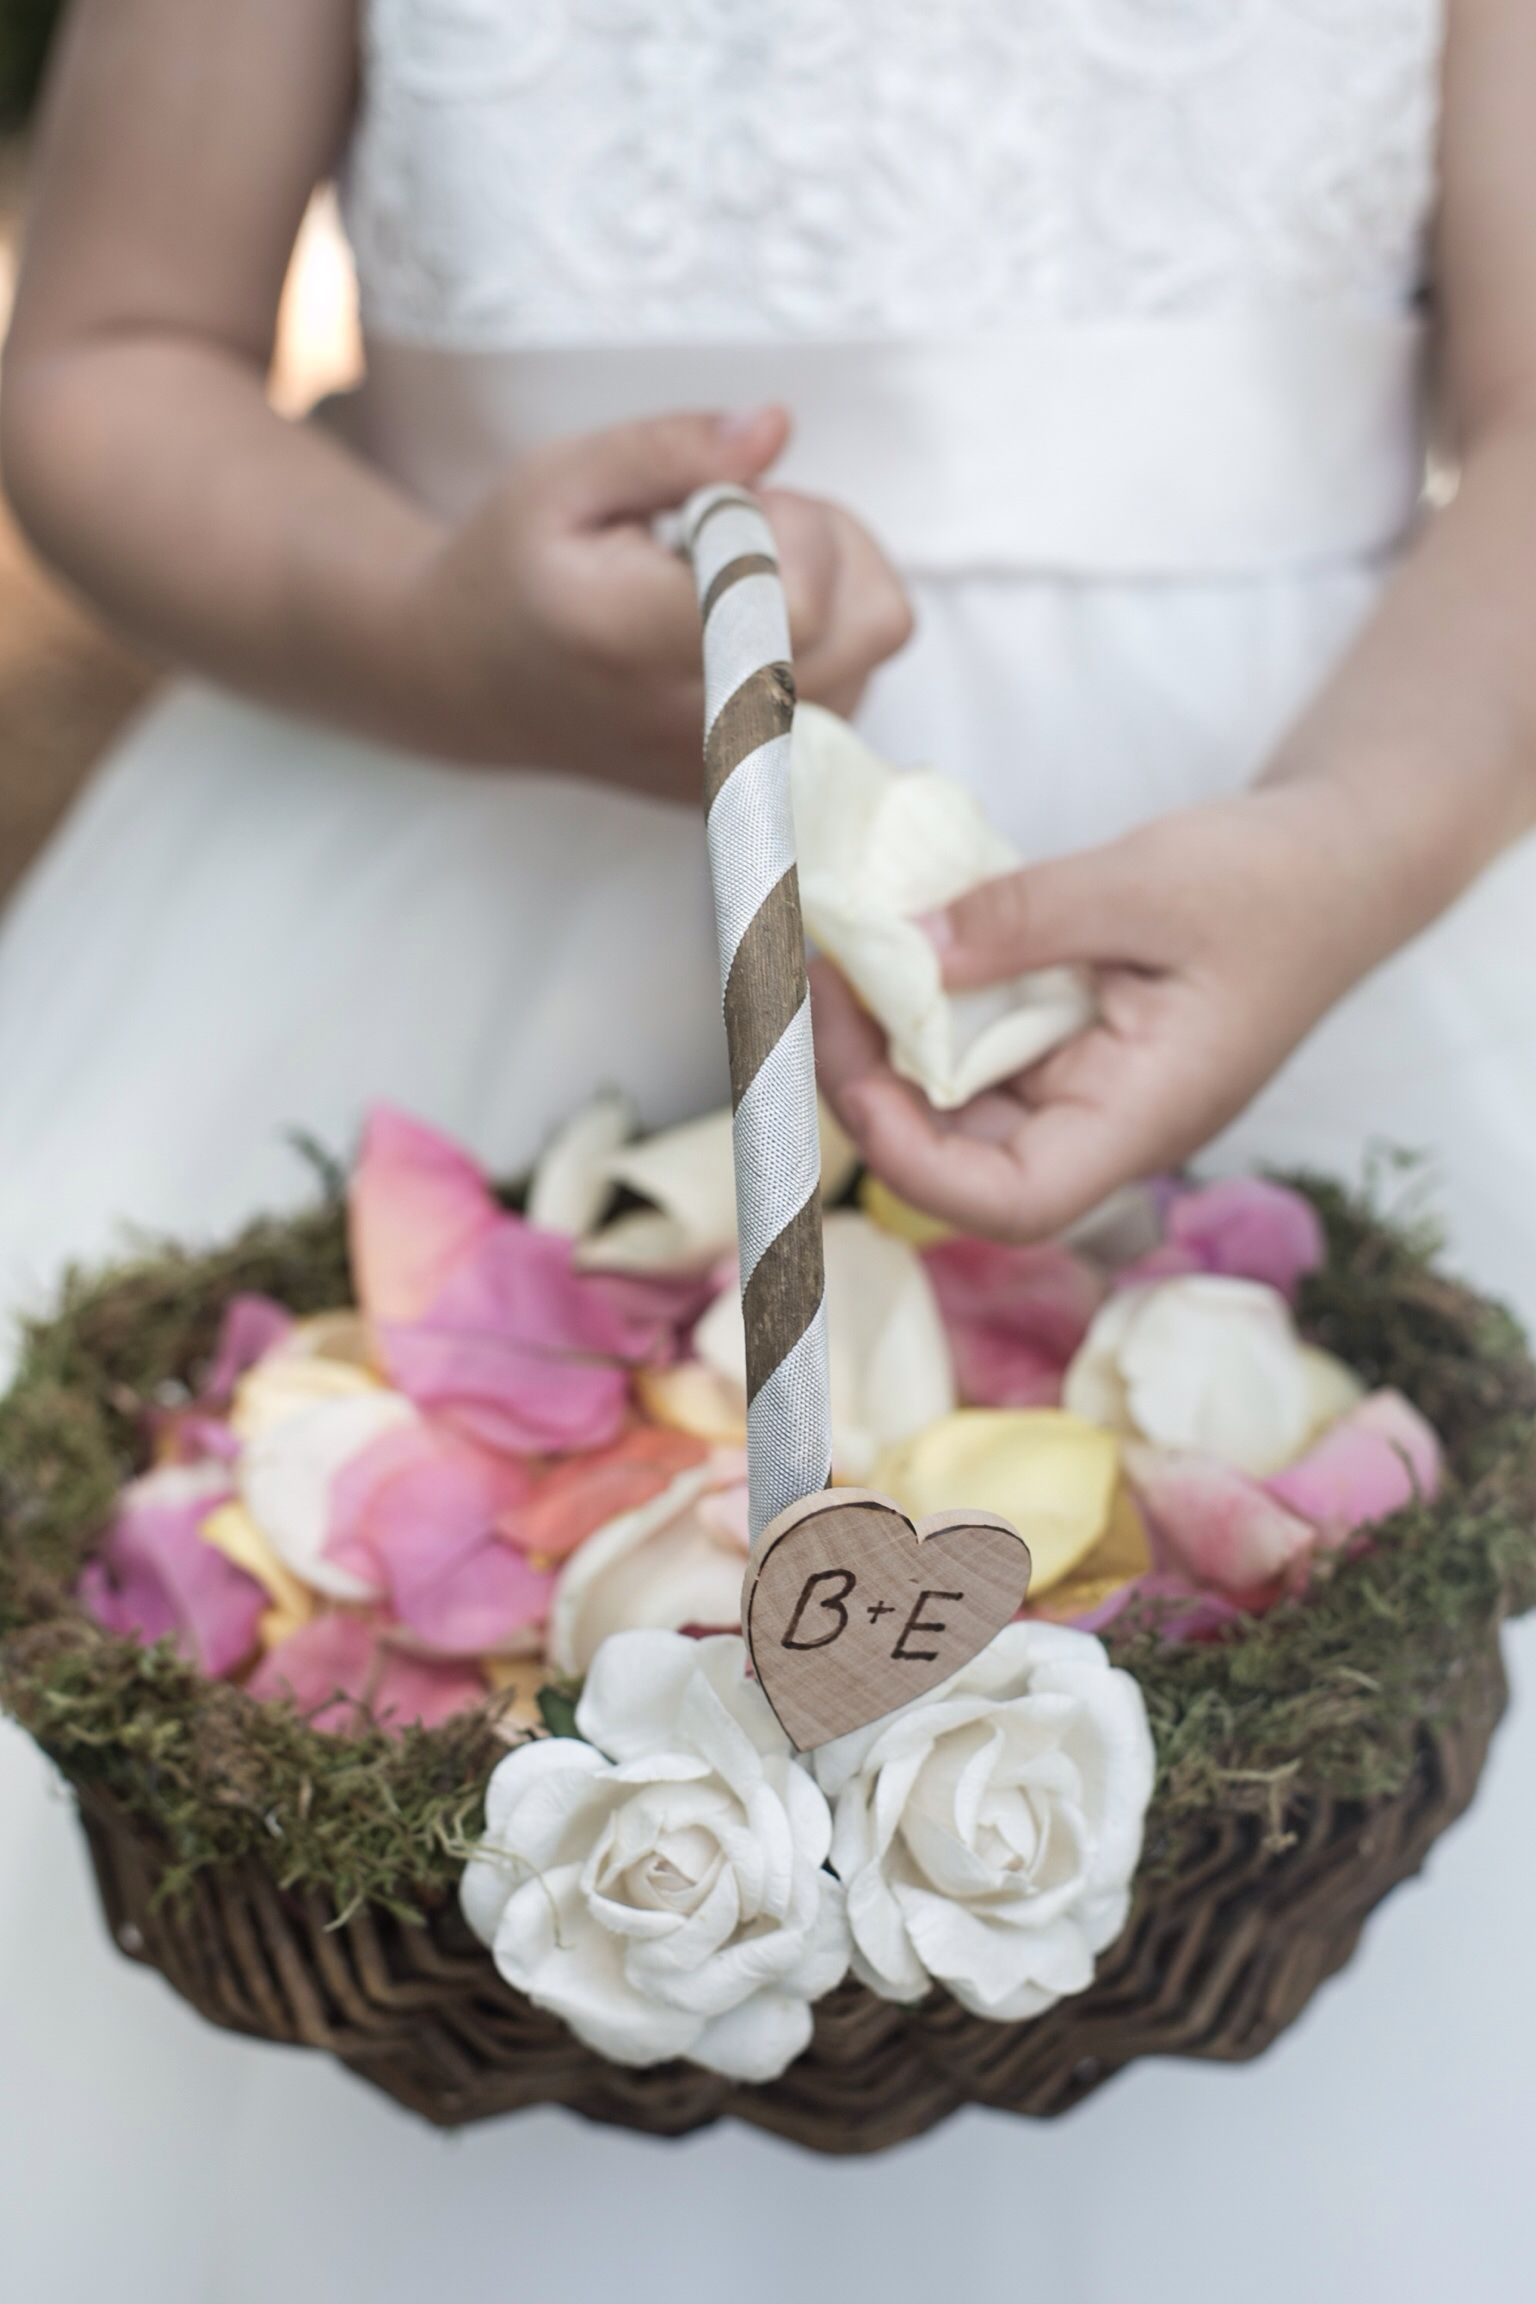 The Small Details On The Flower Girl Basket Make It That Much More